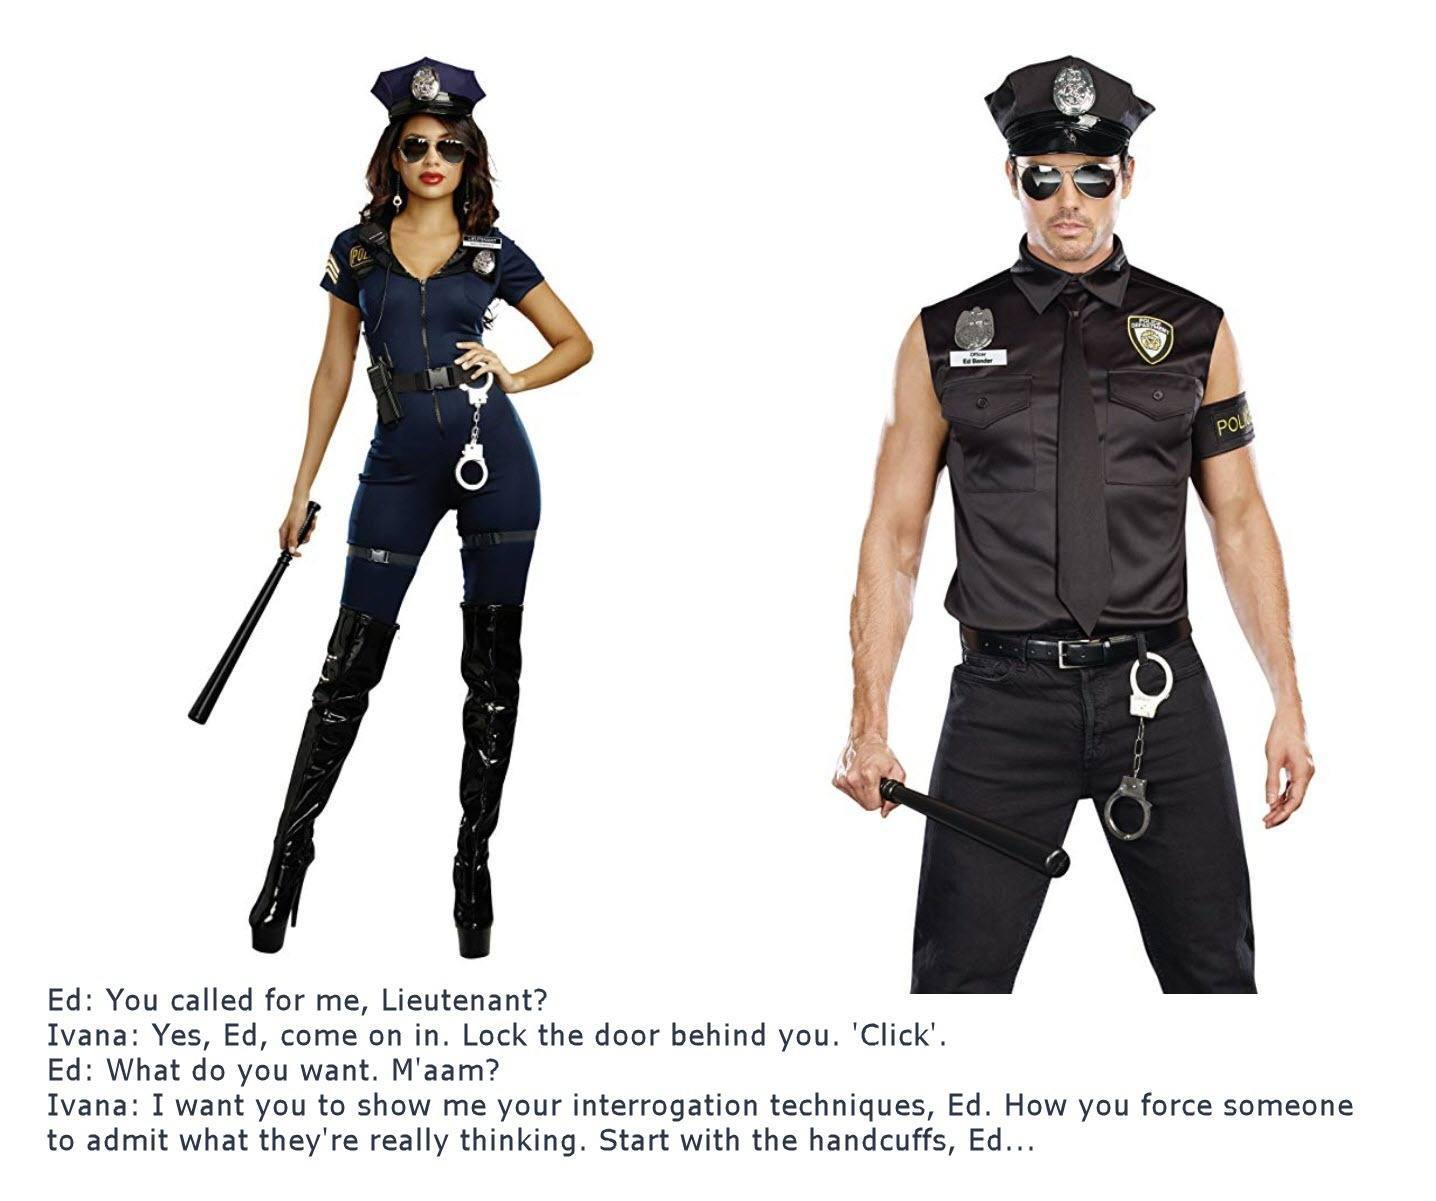 Halloween Costumes for Couples the Precinct